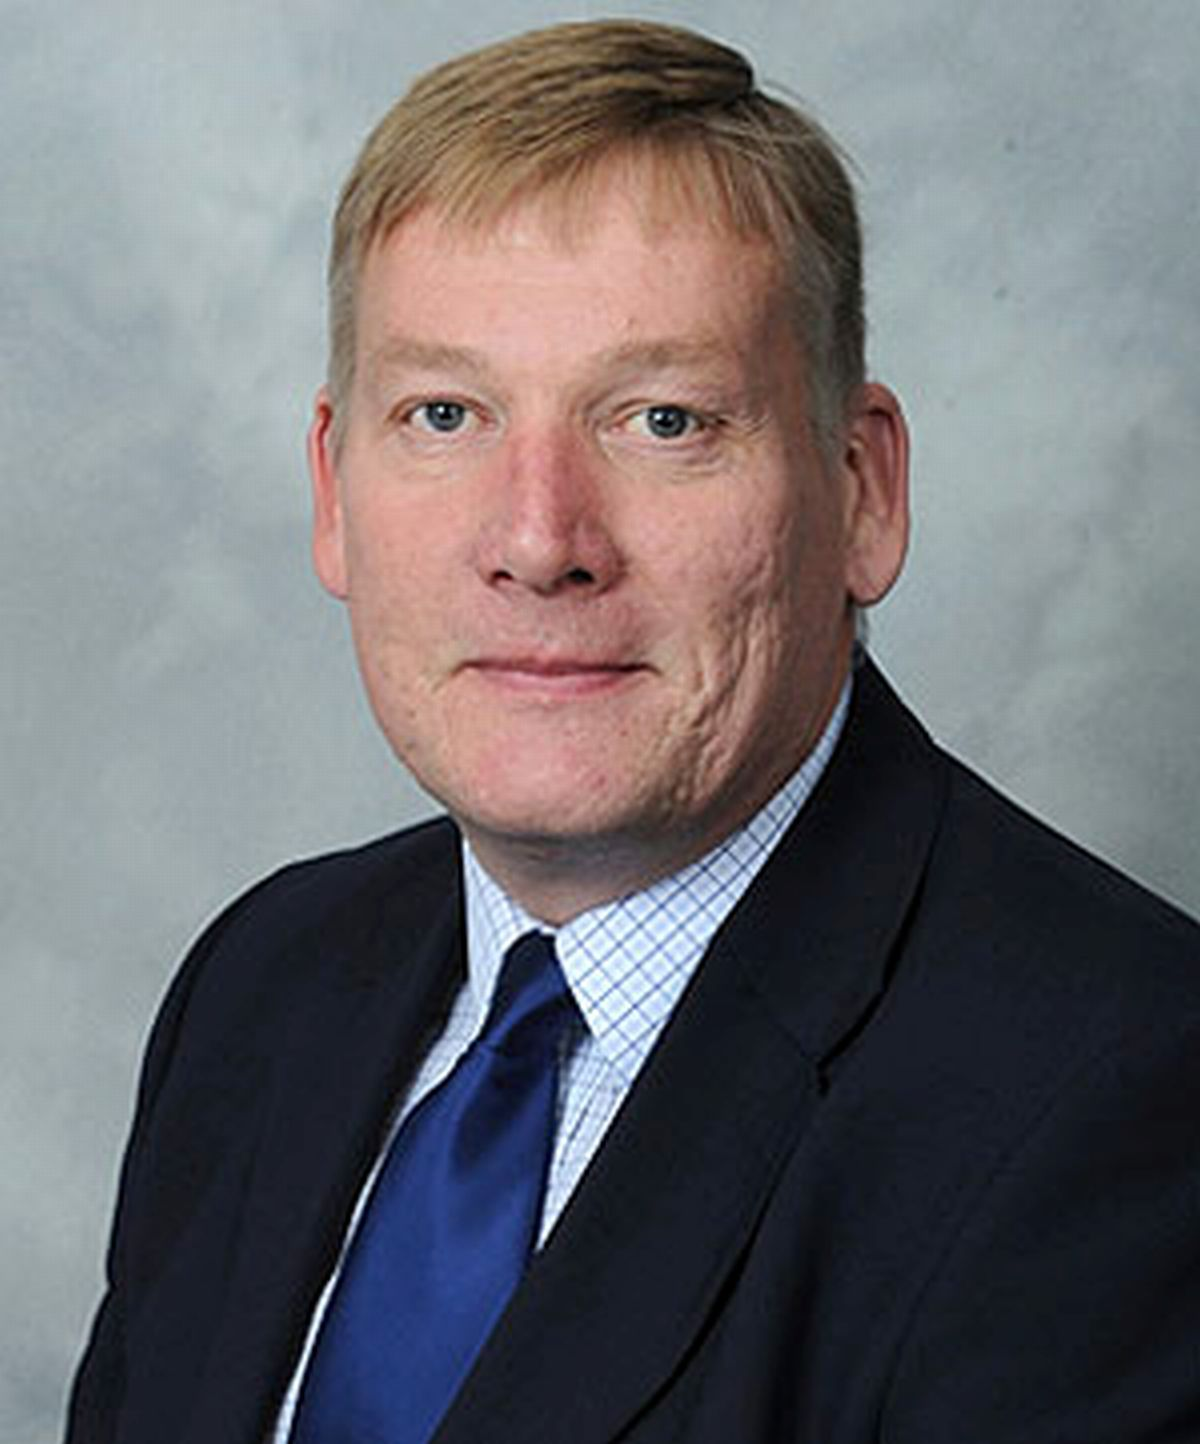 Ilkley MP Kris Hopkins